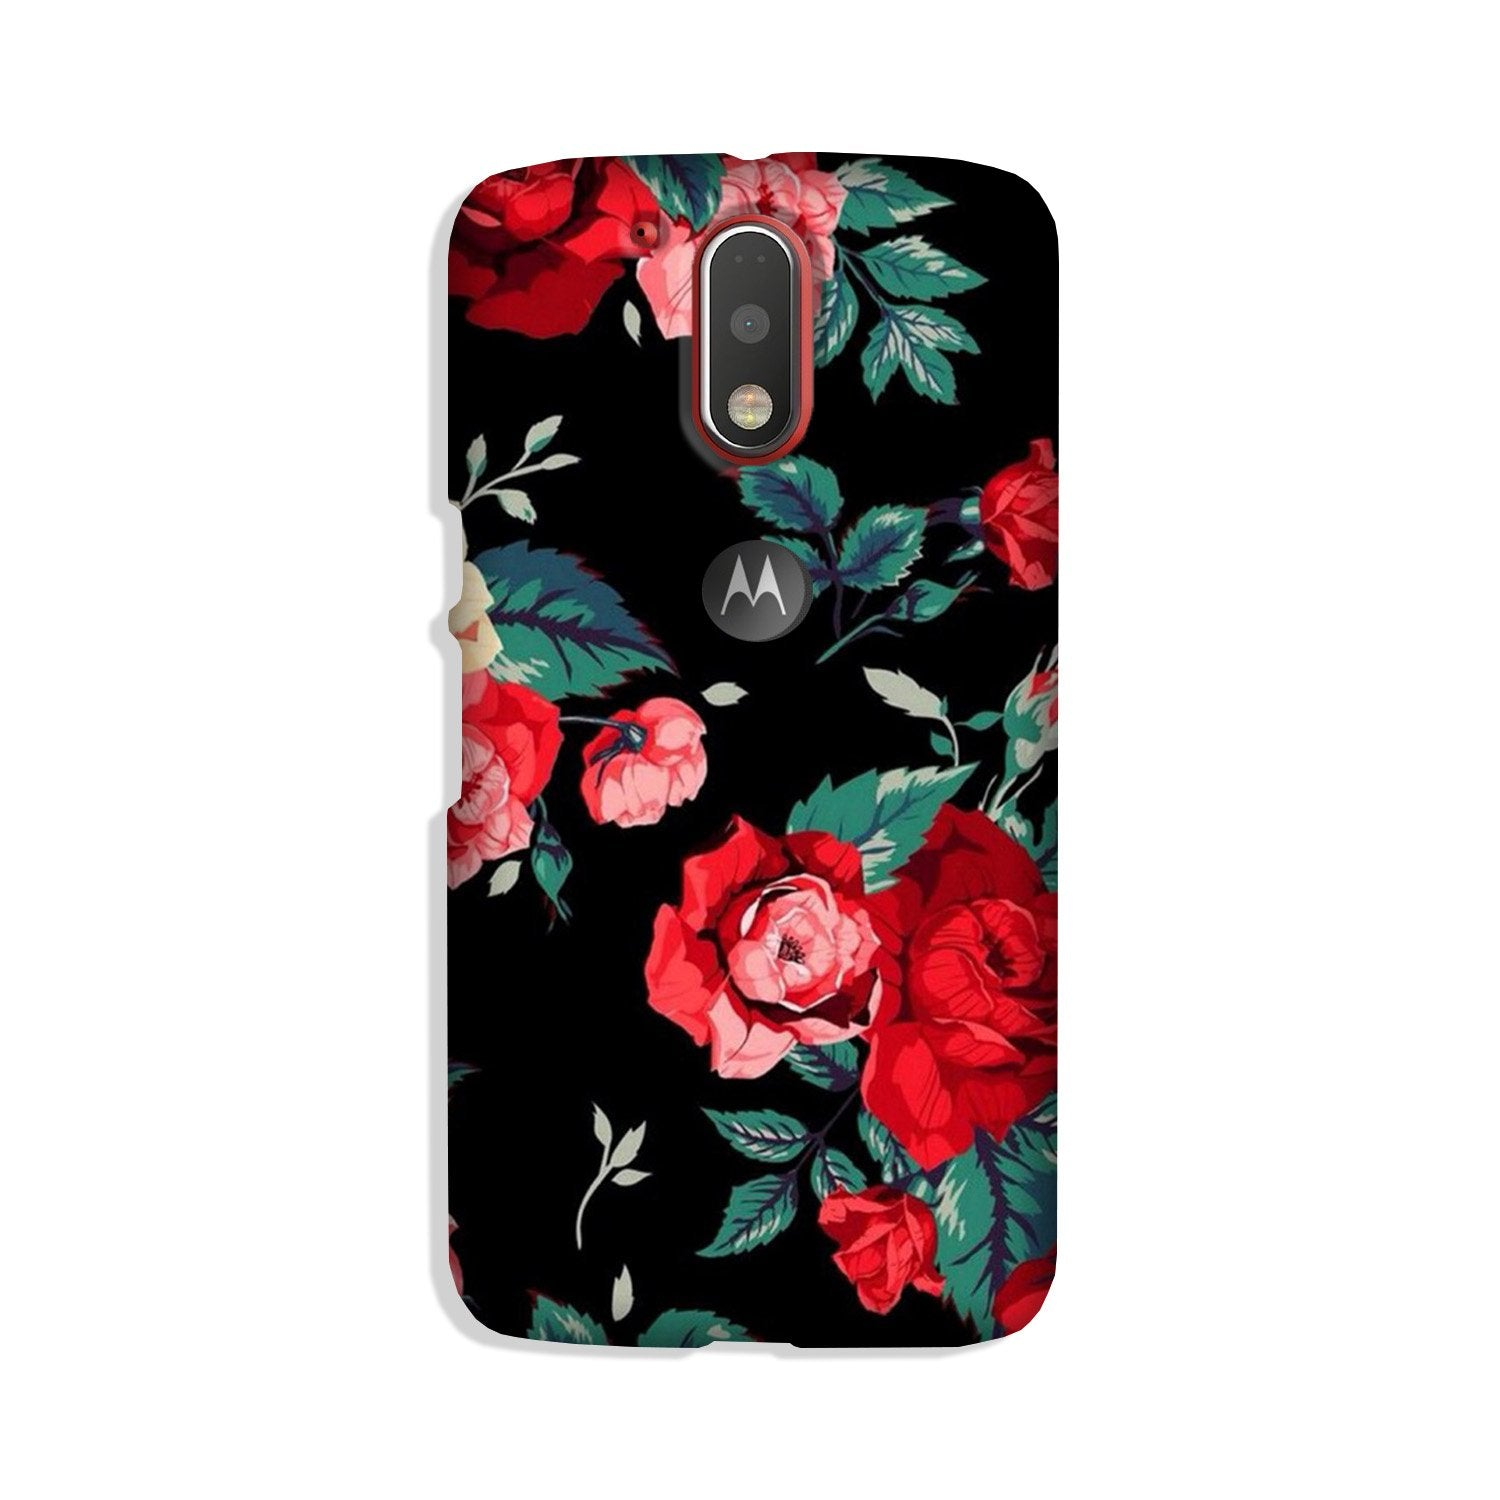 Red Rose Case for Moto G4 Plus